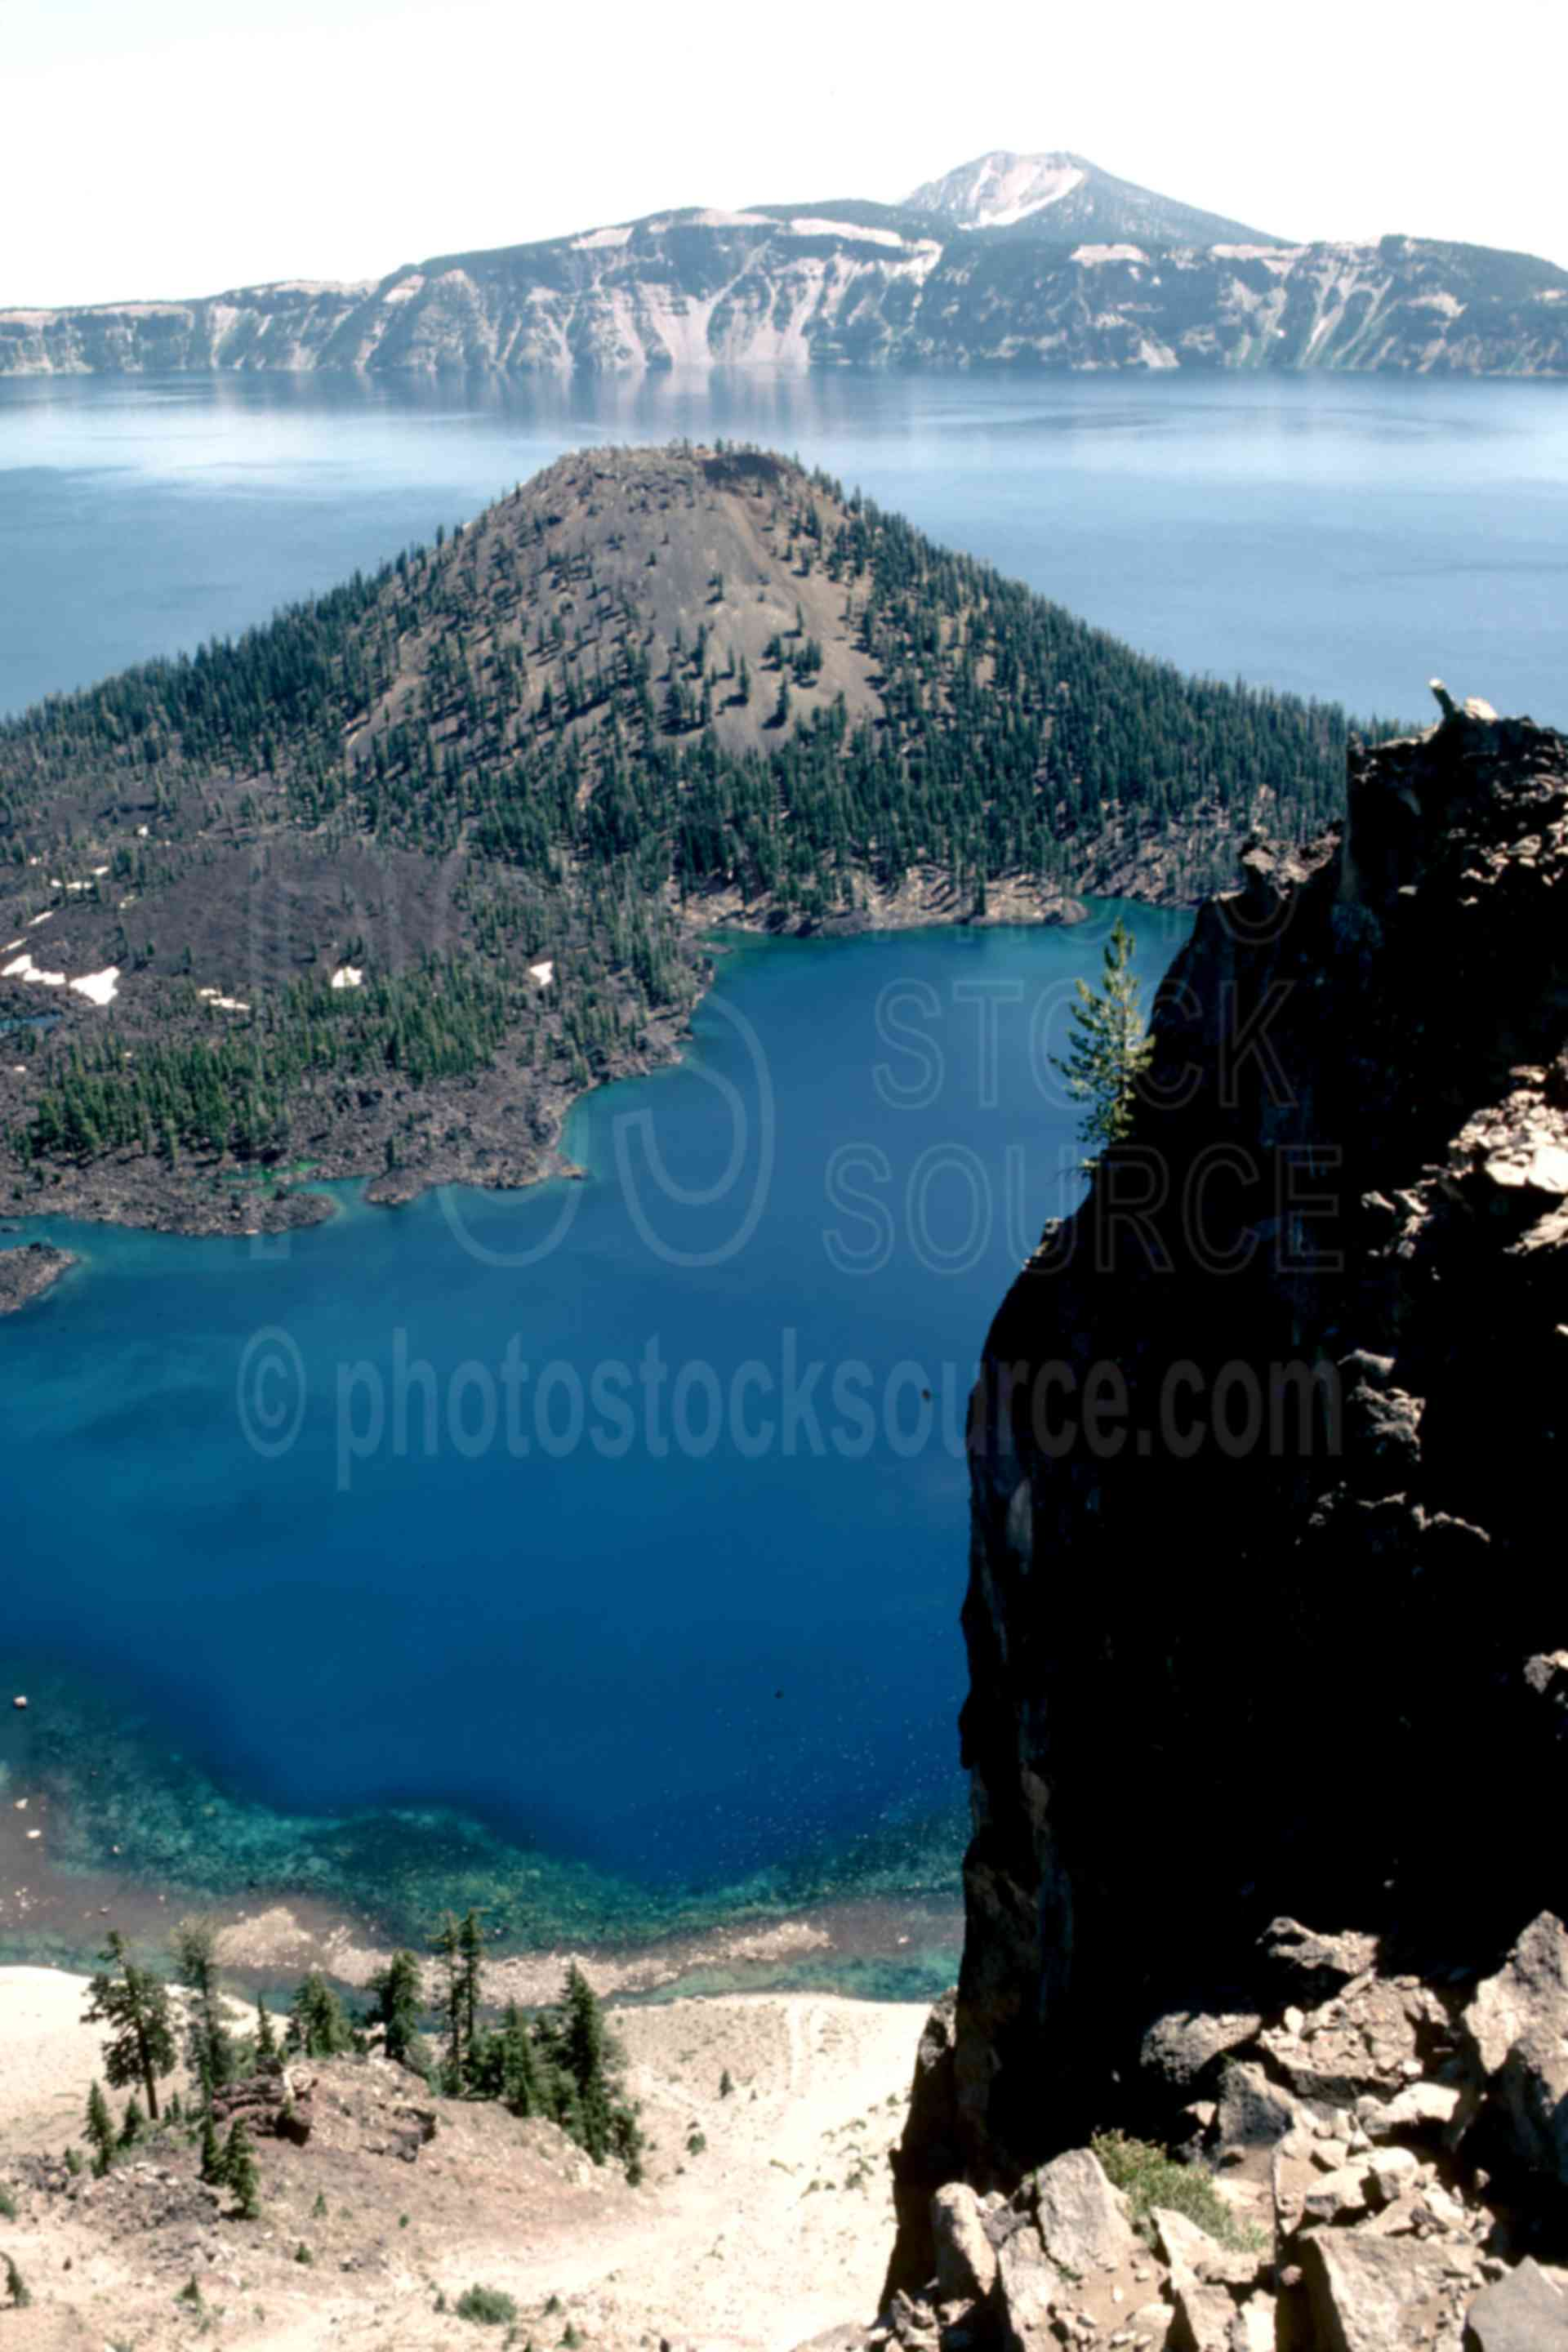 Wizard Island, Mount Scott,mount scott,wizard island,caldera,usas,national park,nature